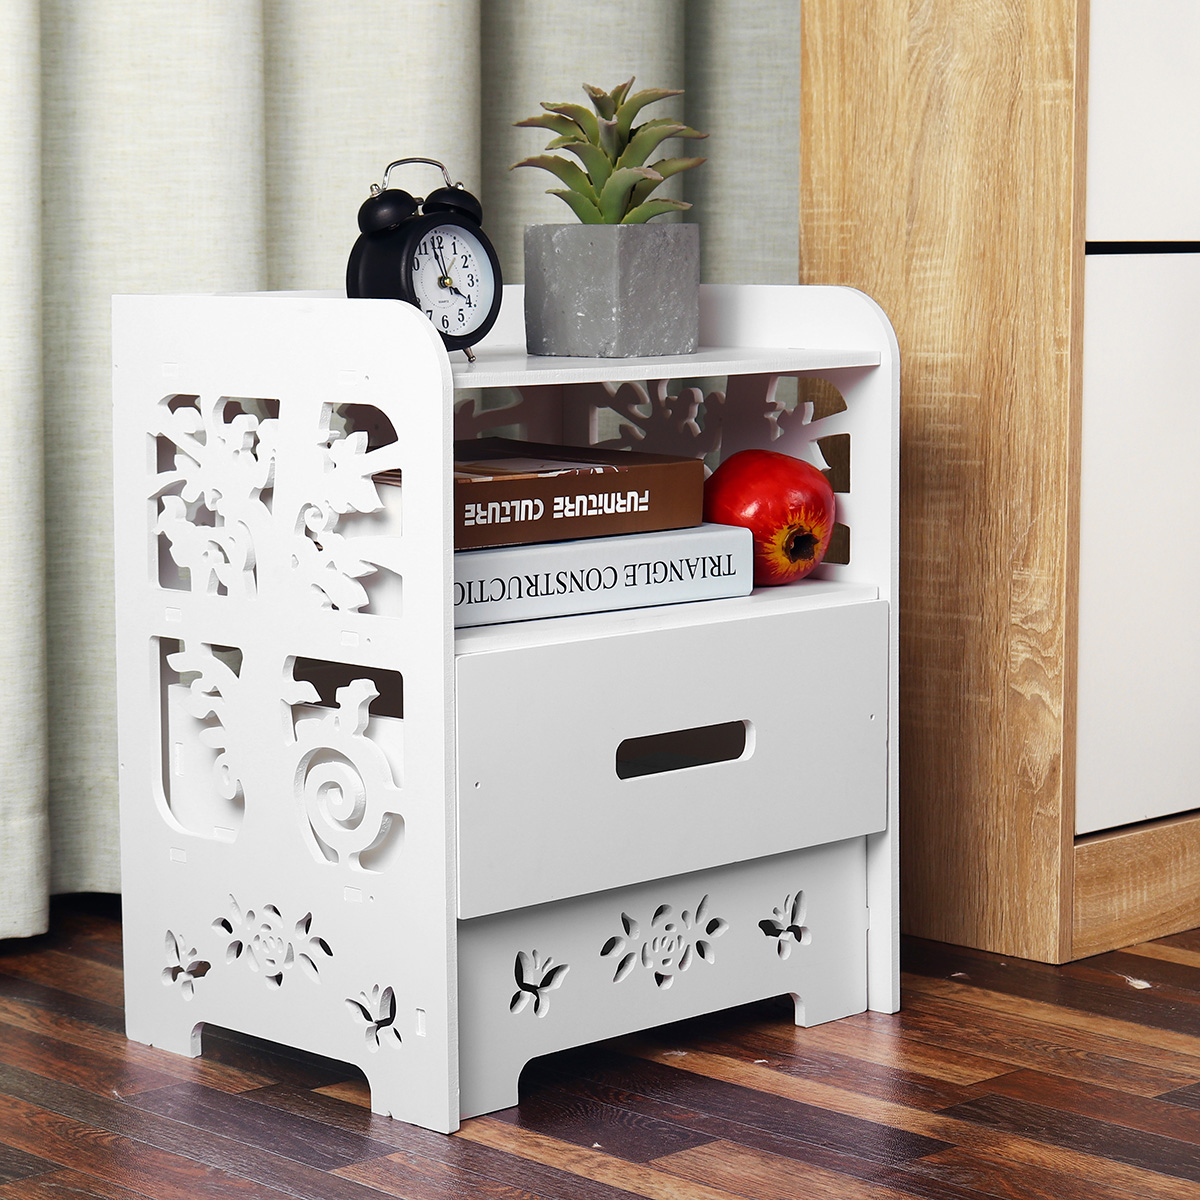 Diy Modern White Bedroom Bedside Table Rack Carved Hollow Nightstand Storage With Drawer Home Decoration Size 15 16 X11 61 X18 11 Walmart Com Walmart Com